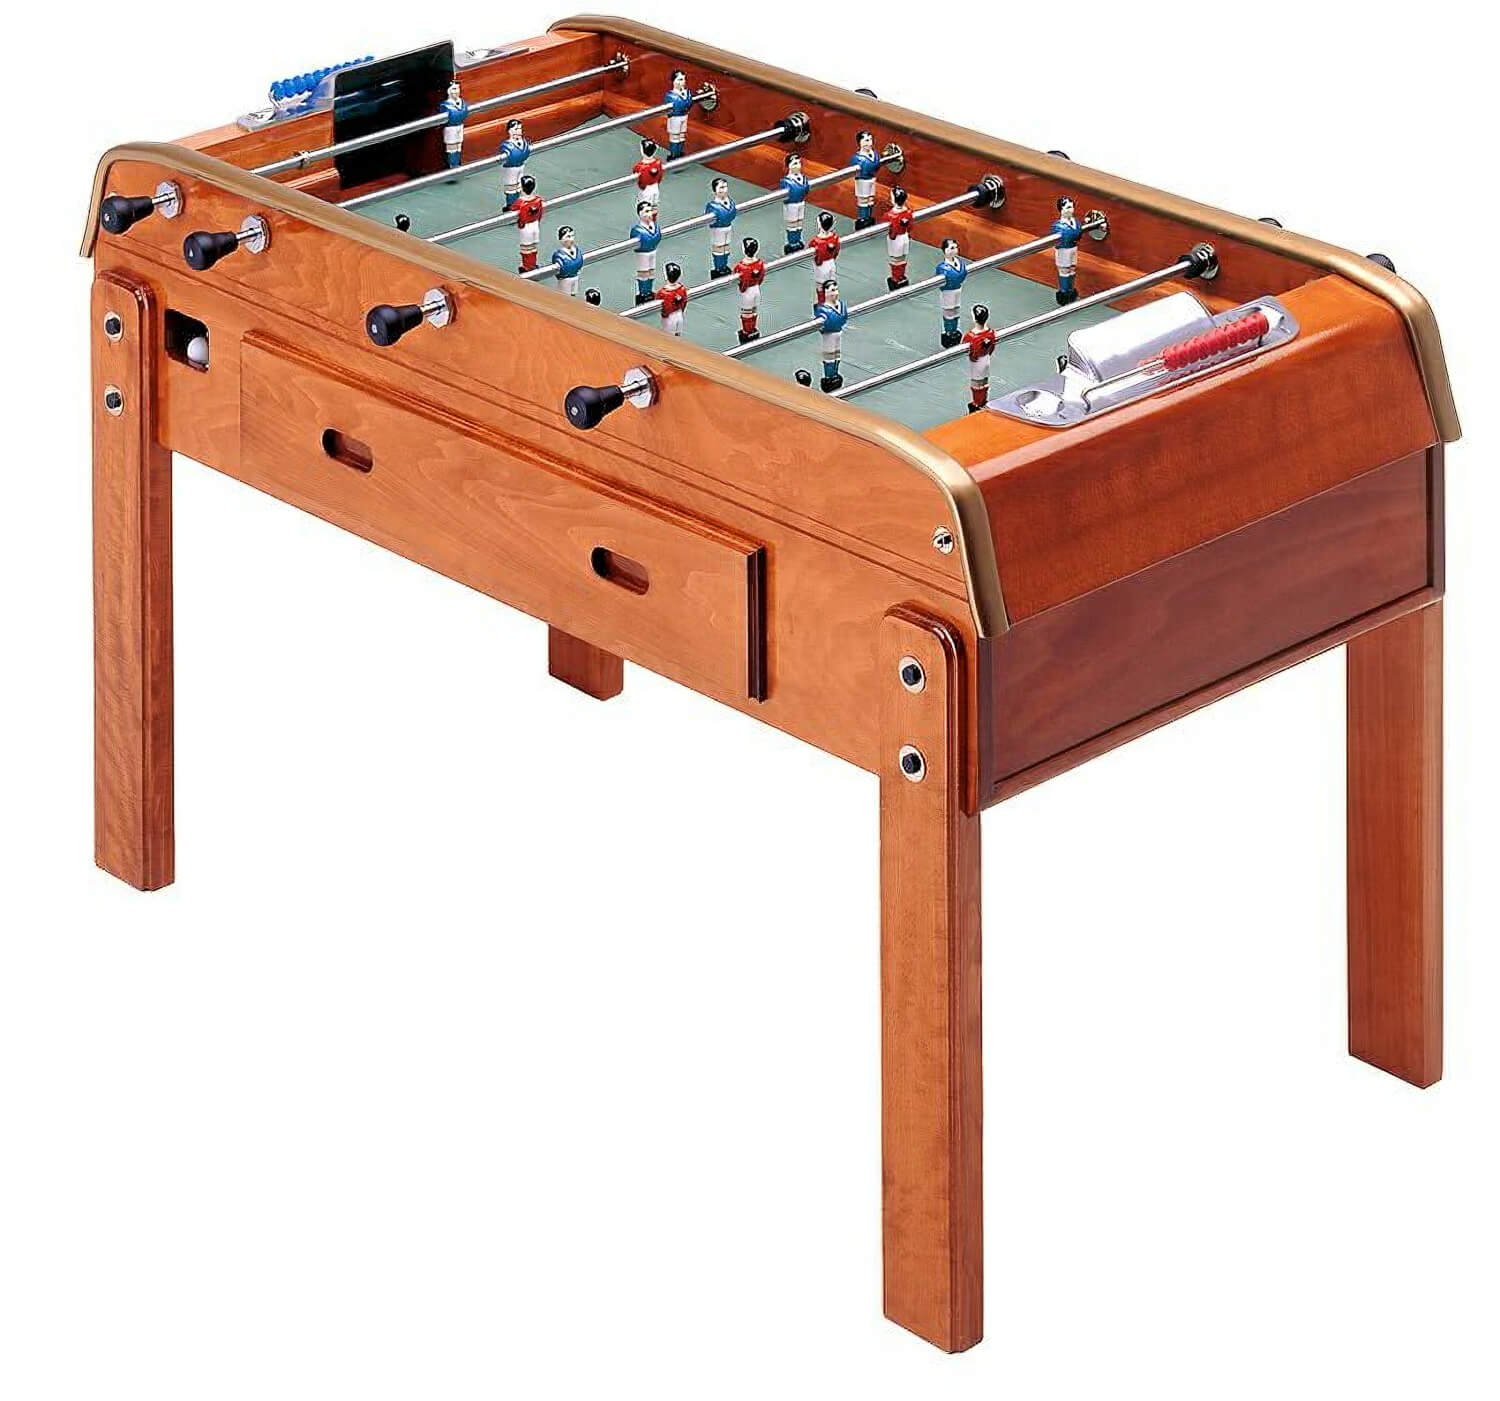 Bonzini grand tiroirs football table liberty games - Tiroir table escamotable ...